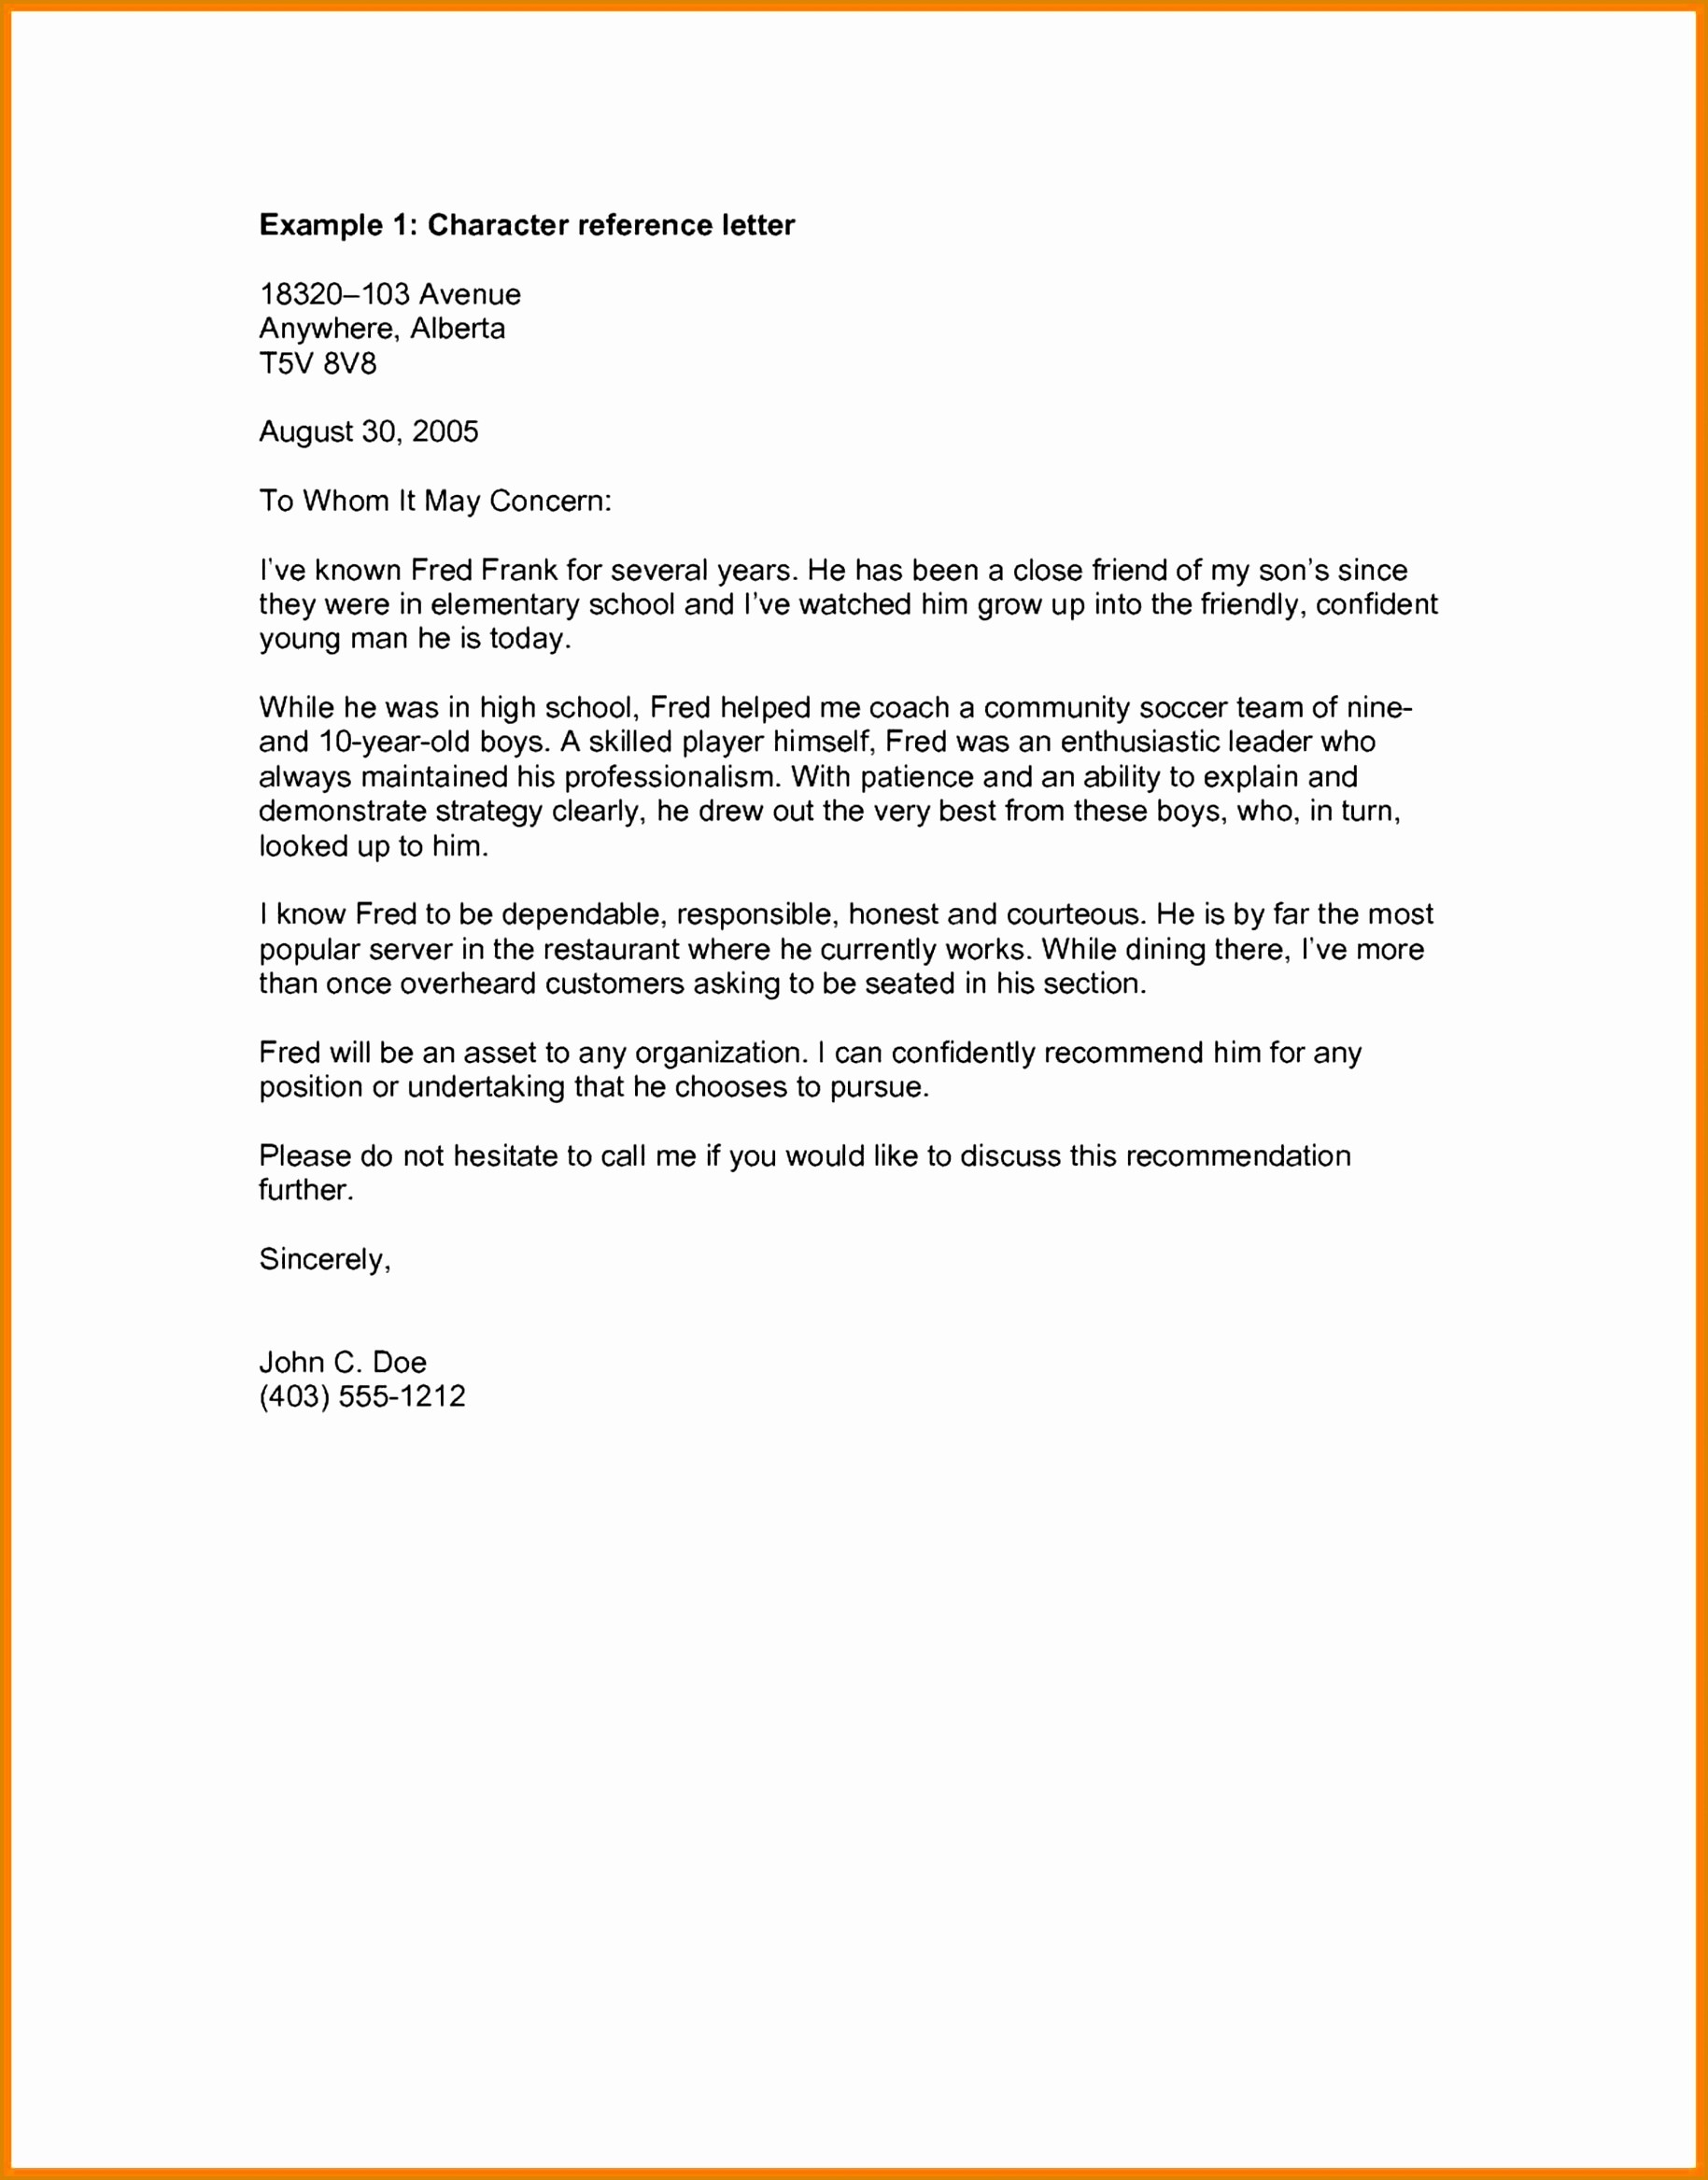 letter of engagement template contractor Collection-Engagement Letter Template Uk Best Undertaking Letter format Construction New Breach Contract New Undertaking Letter 3-i